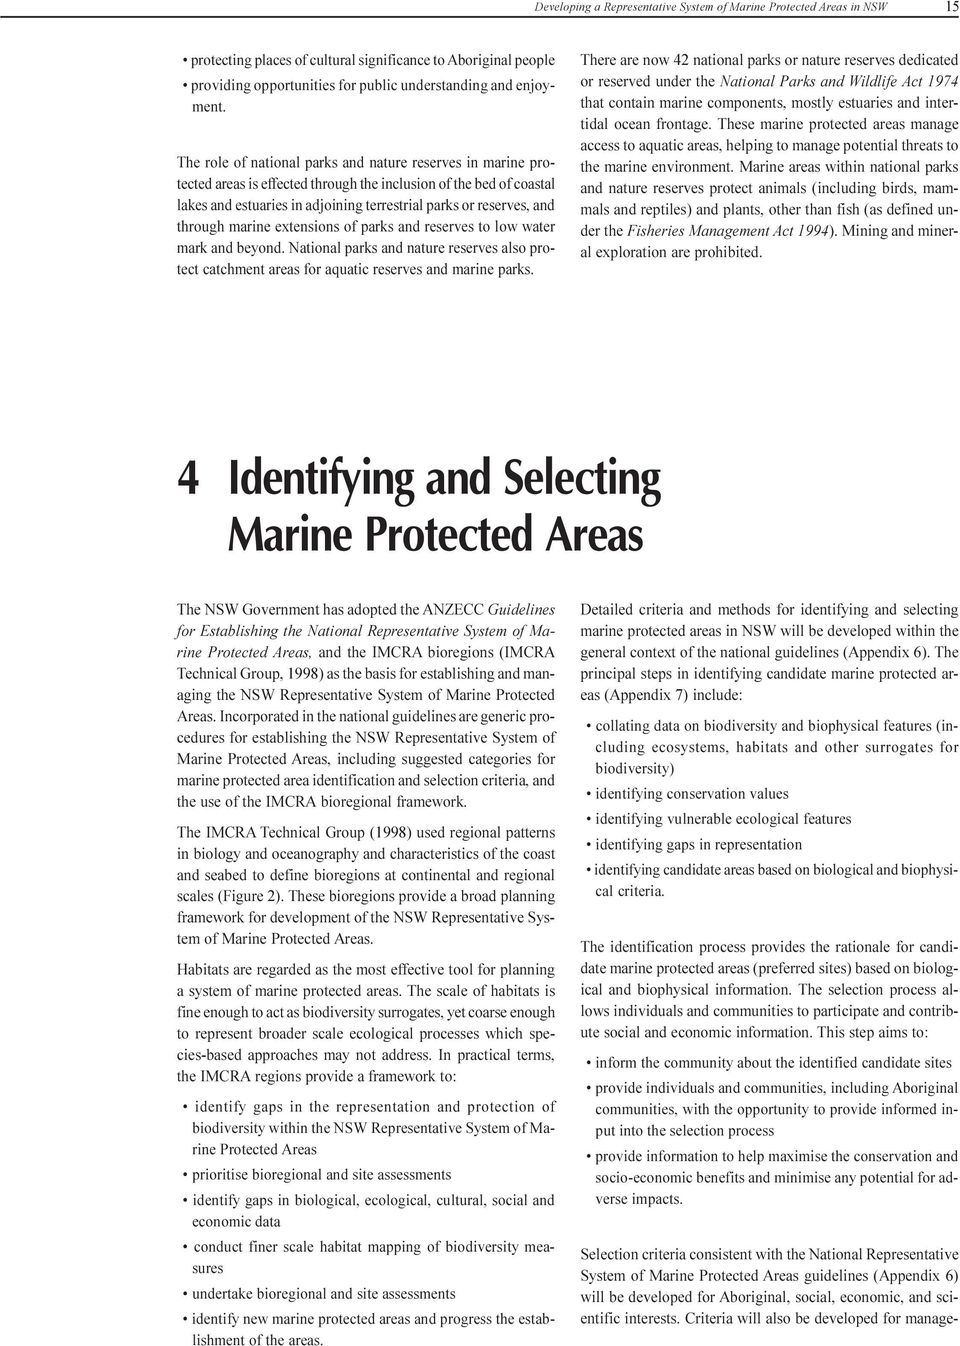 through marine extensions of parks and reserves to low water mark and beyond National parks and nature reserves also protect catchment areas for aquatic reserves and marine parks There are now 42